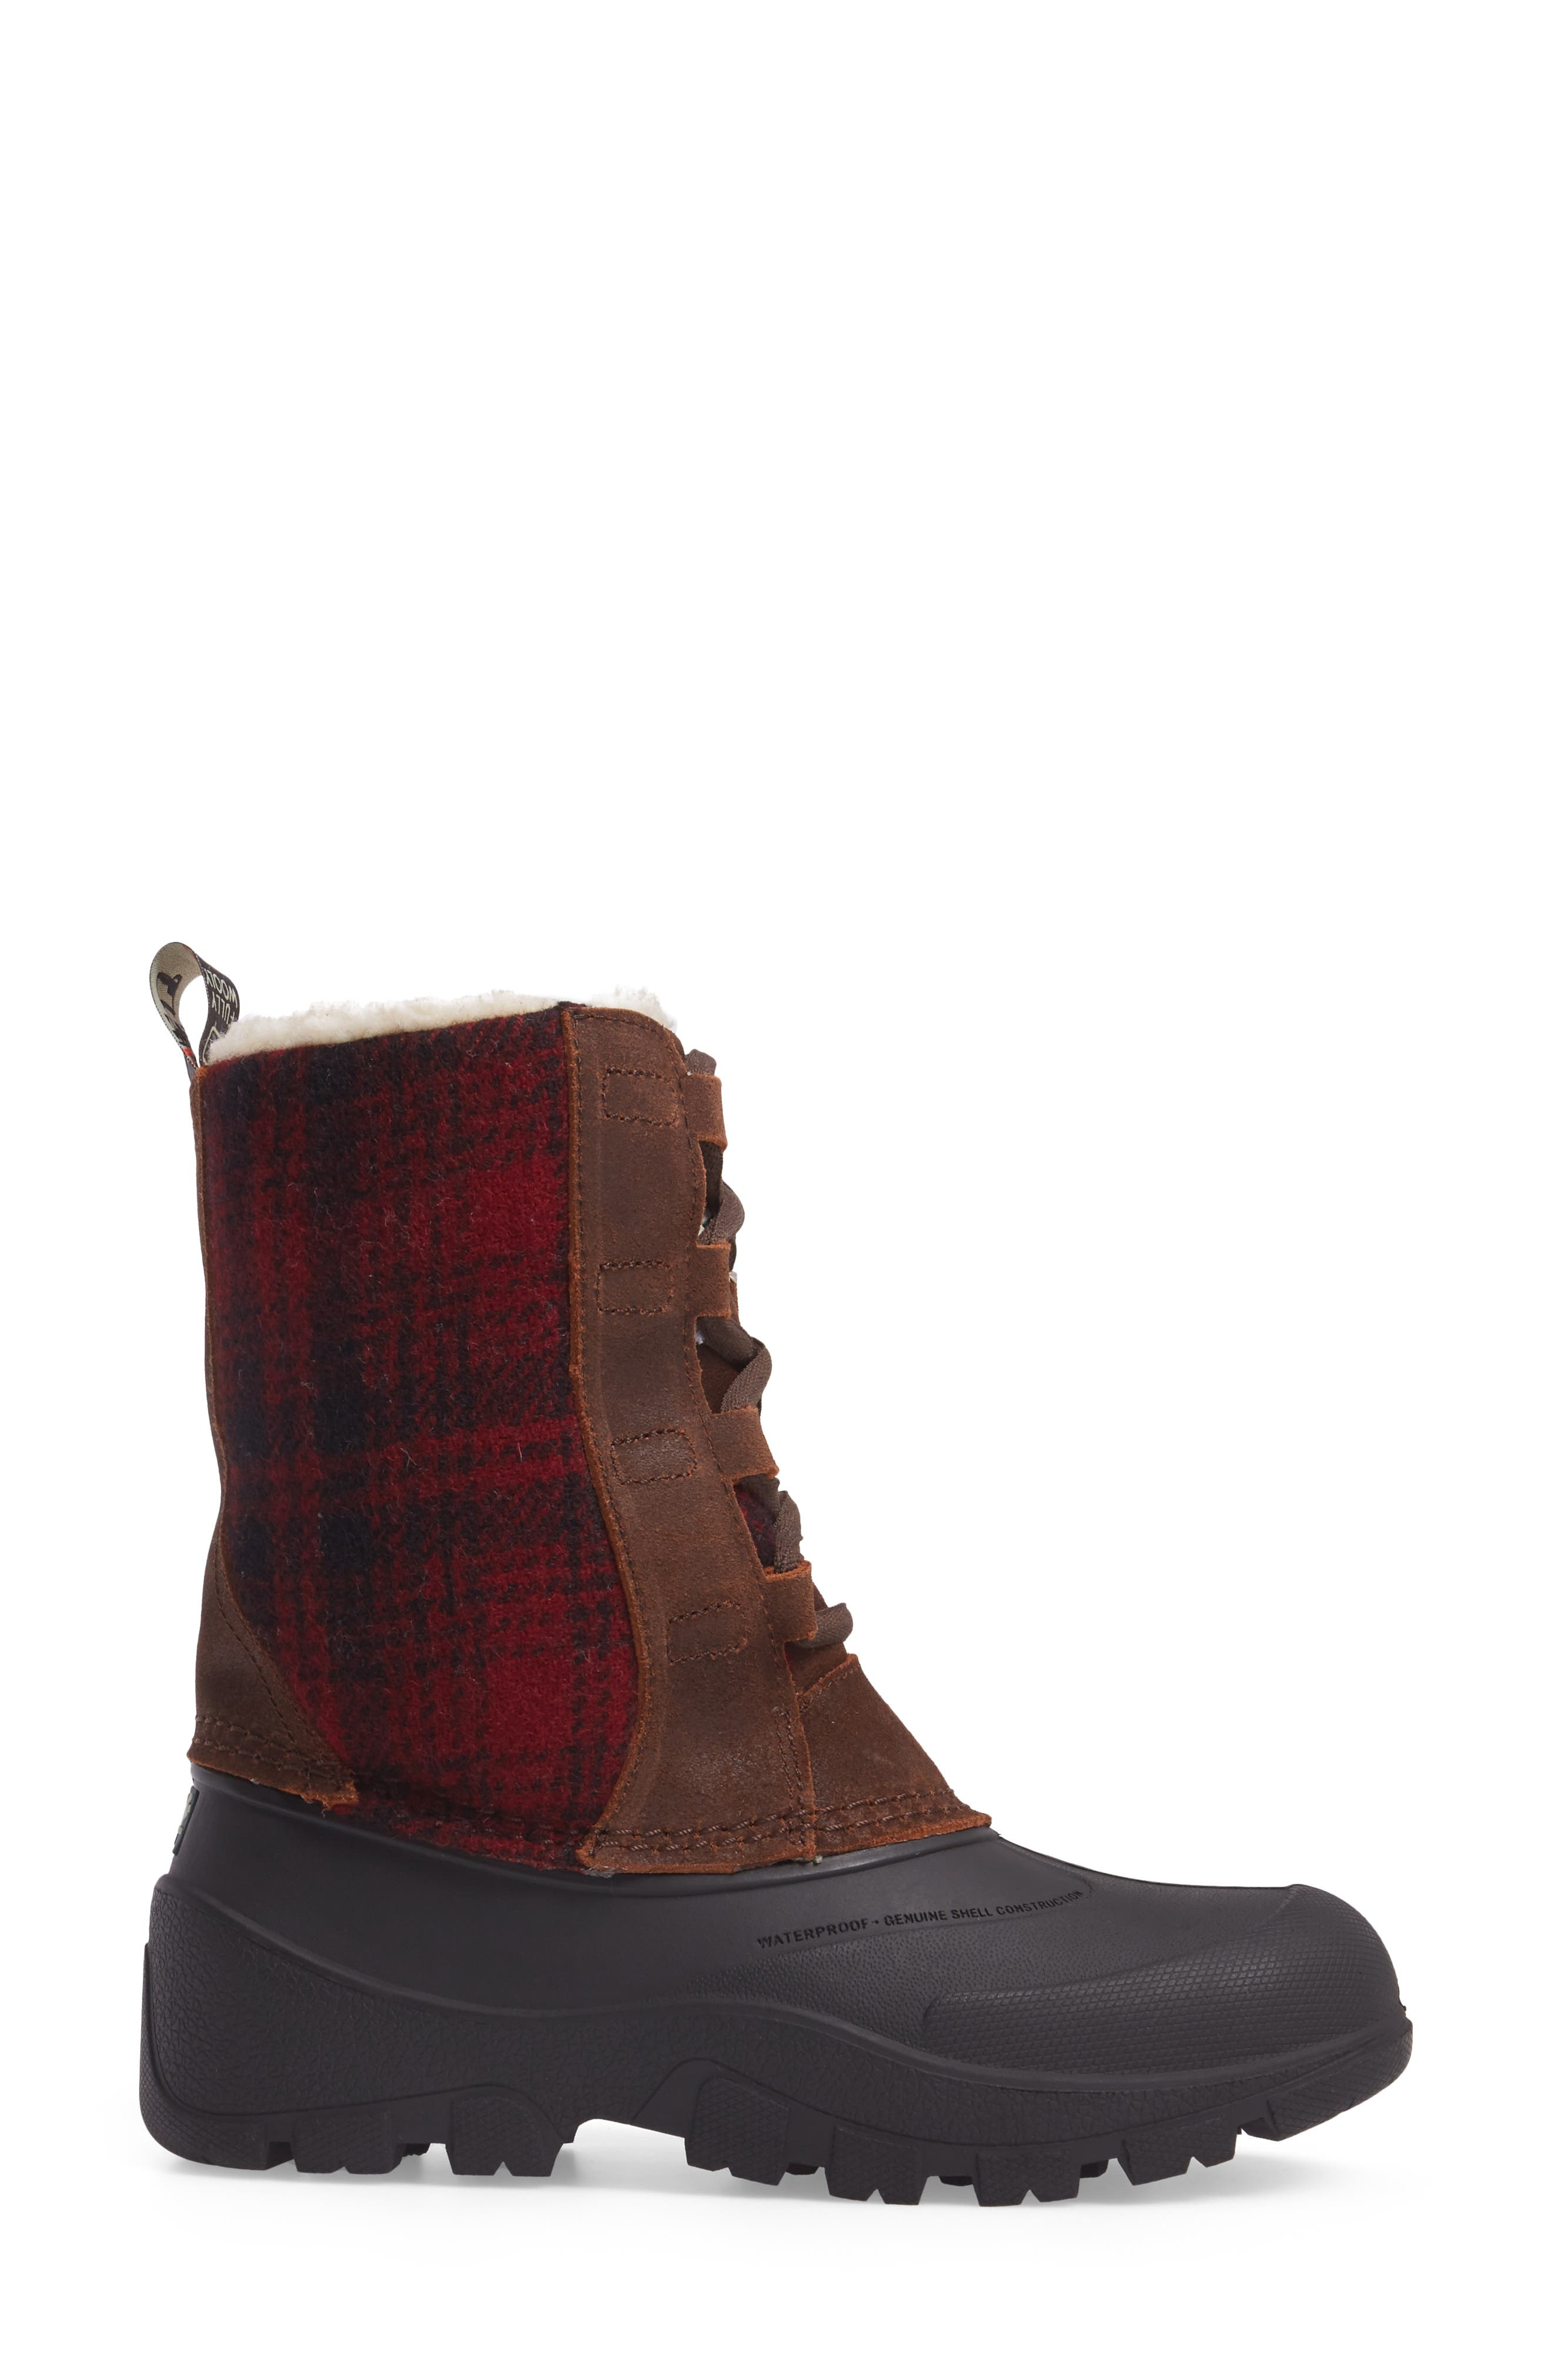 Alternate Image 3  - Woolrich Fully Wooly Tundracat Waterproof Insulated Winter Boot (Women)